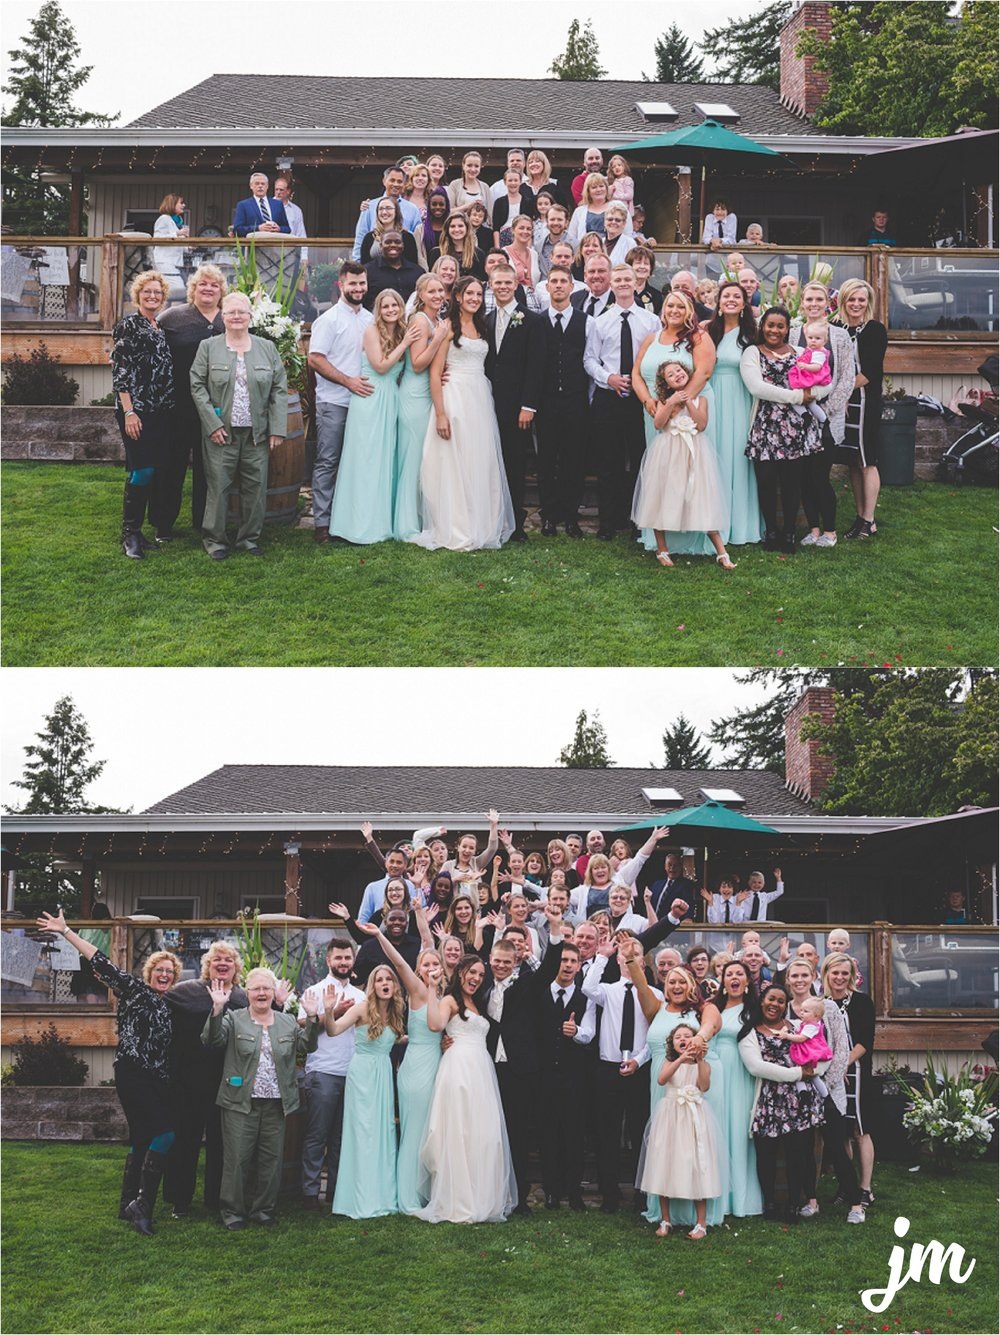 jannicka-mayte-intimate-backyard-lake-wedding-kent-wa-pacific-northwest-wedding-photographer_0056.jpg